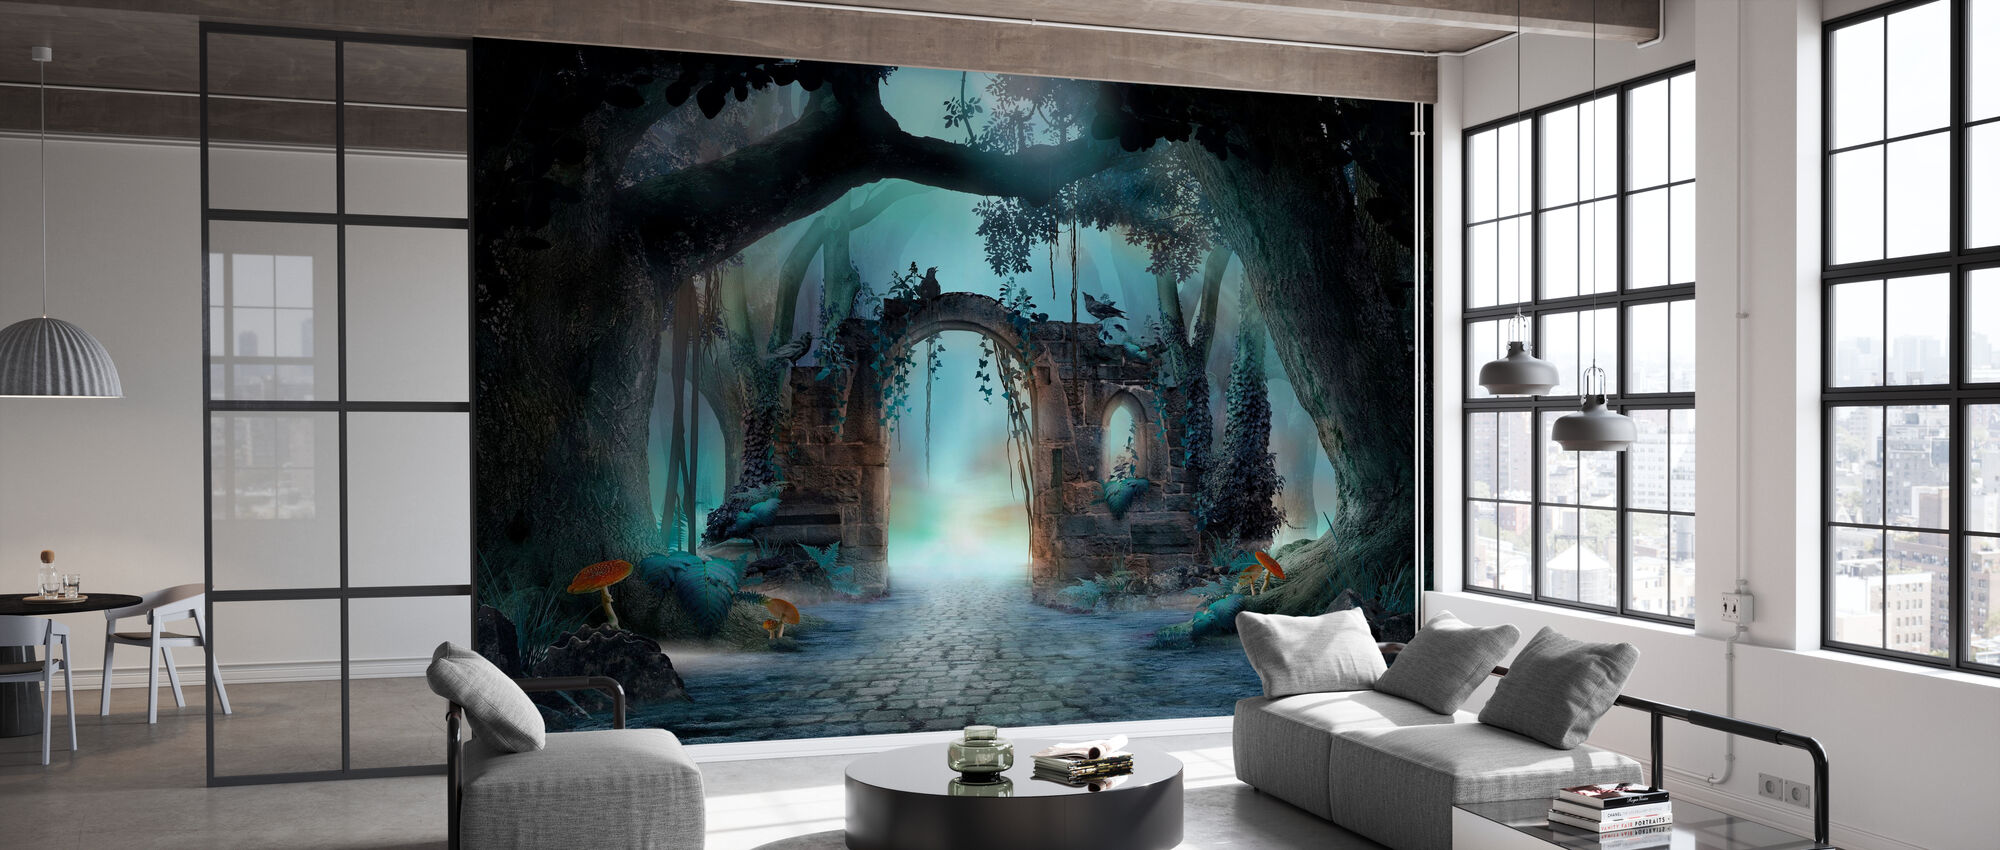 Archway in an Enchanted Forest - Wallpaper - Office